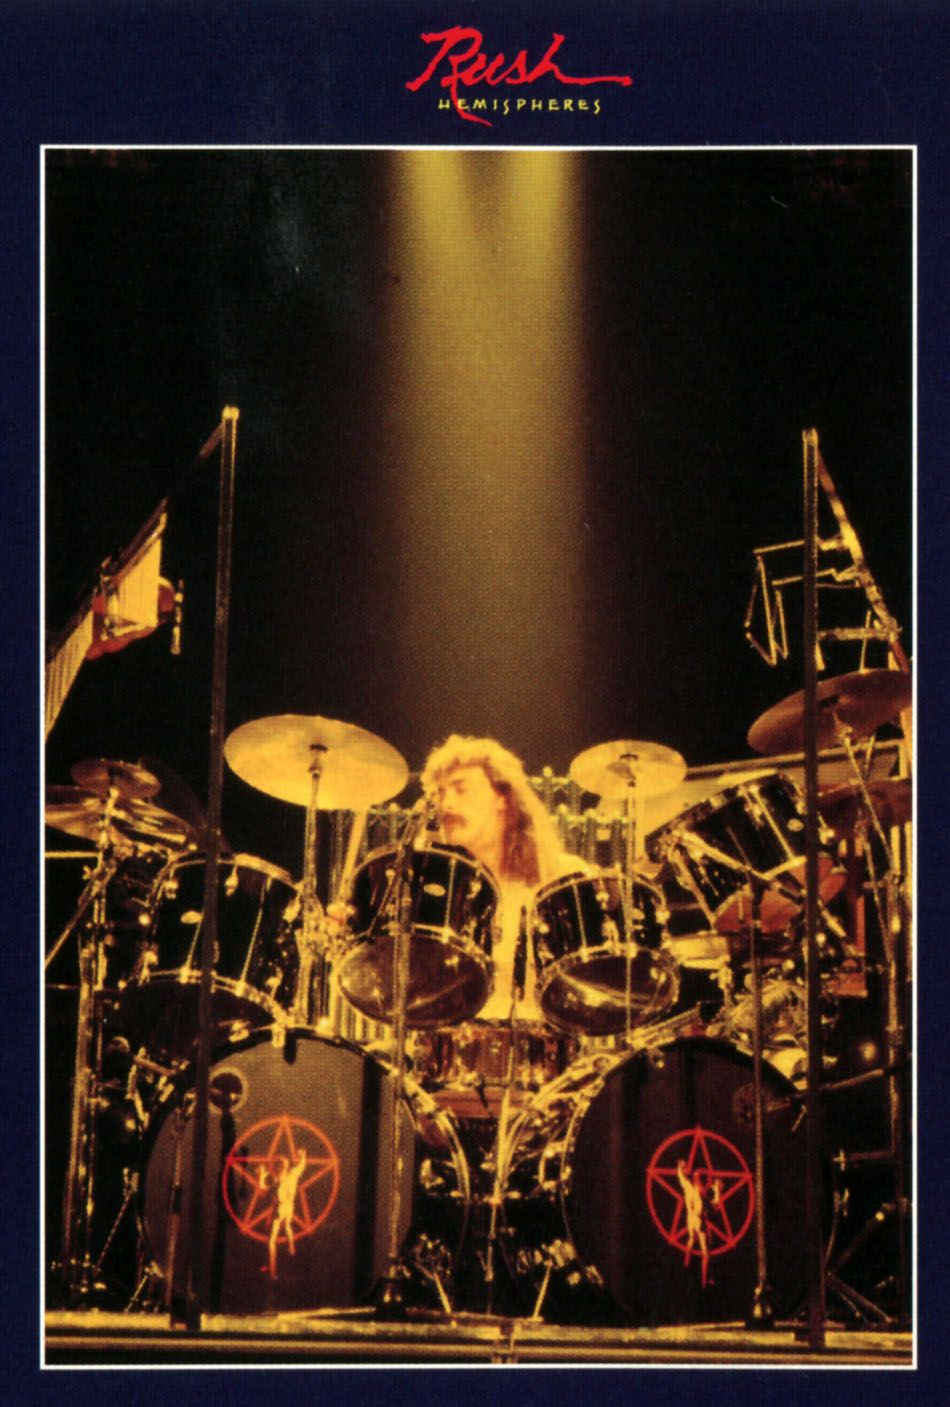 A Tribute To Rush